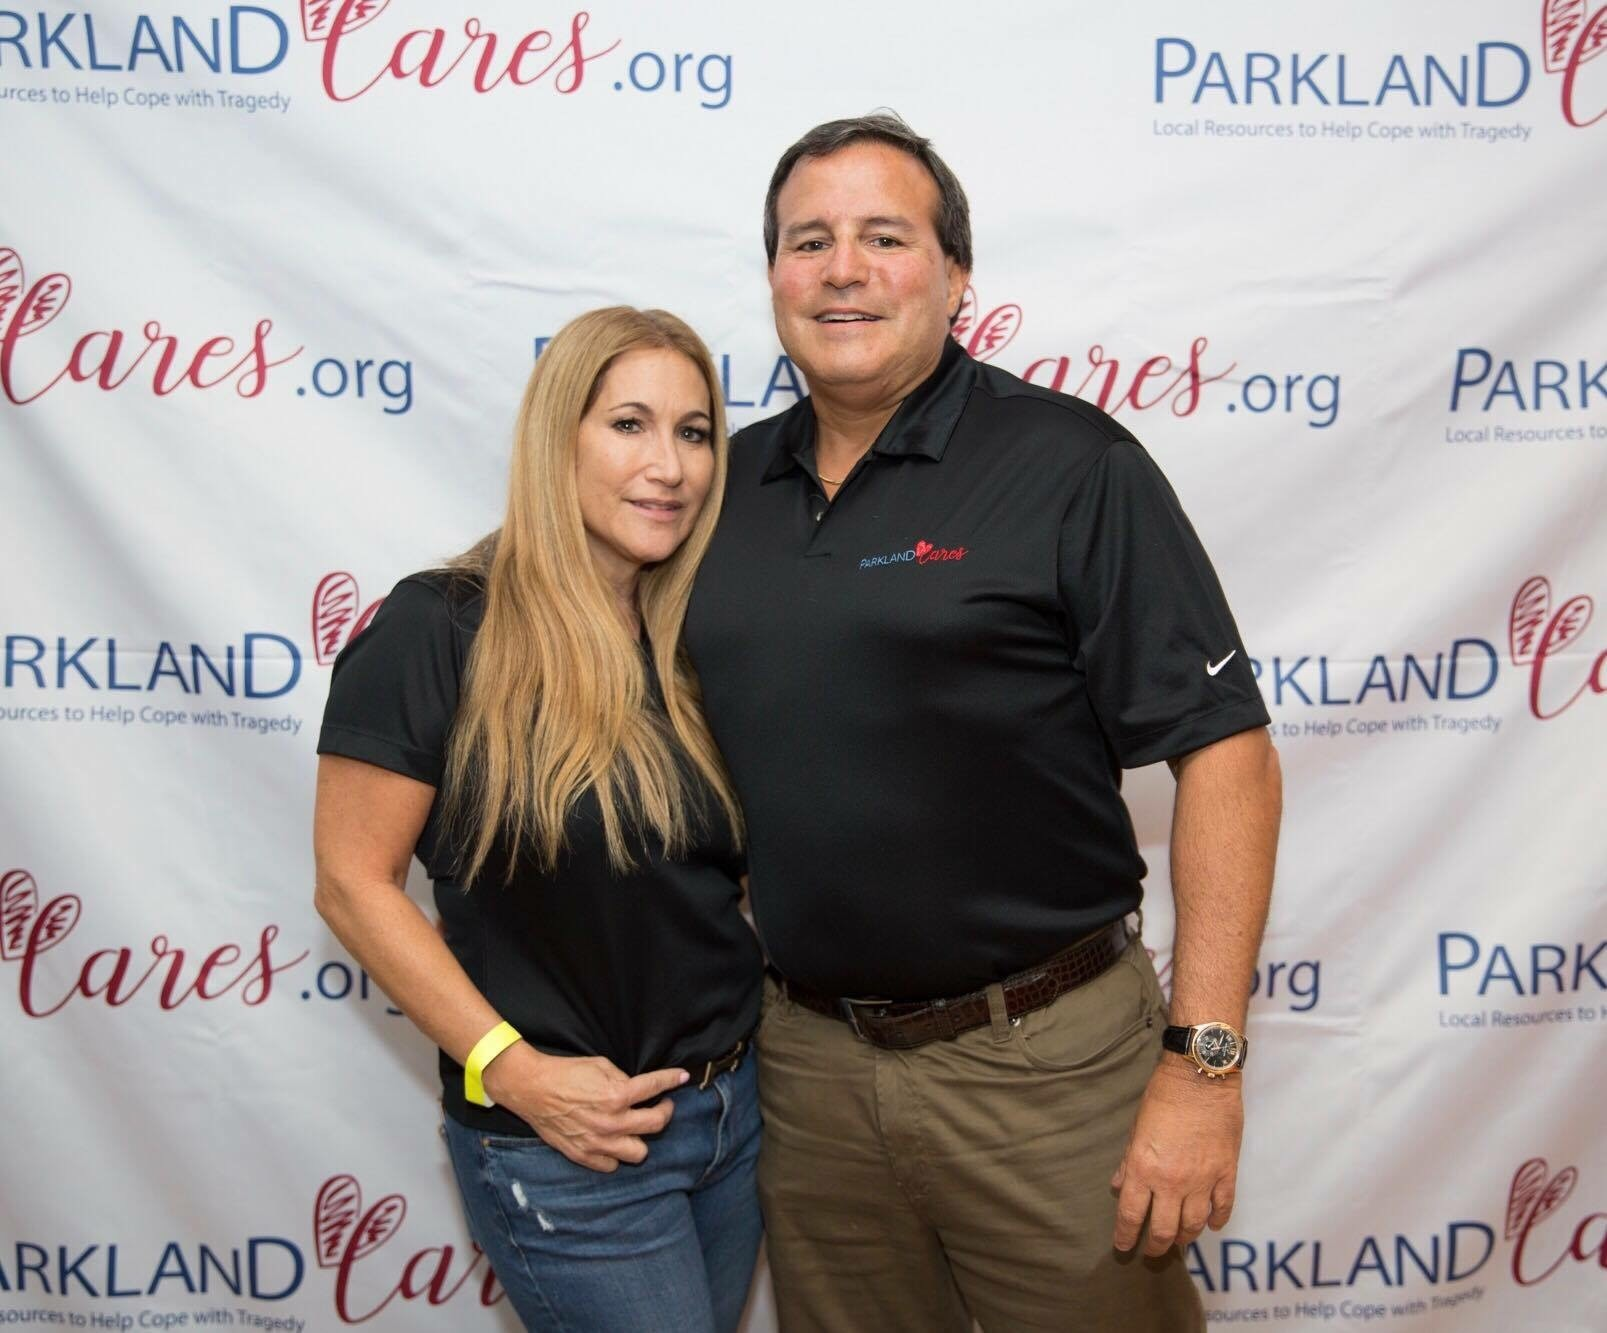 Gwen and Howard Dvorkin at Parkland Cares event